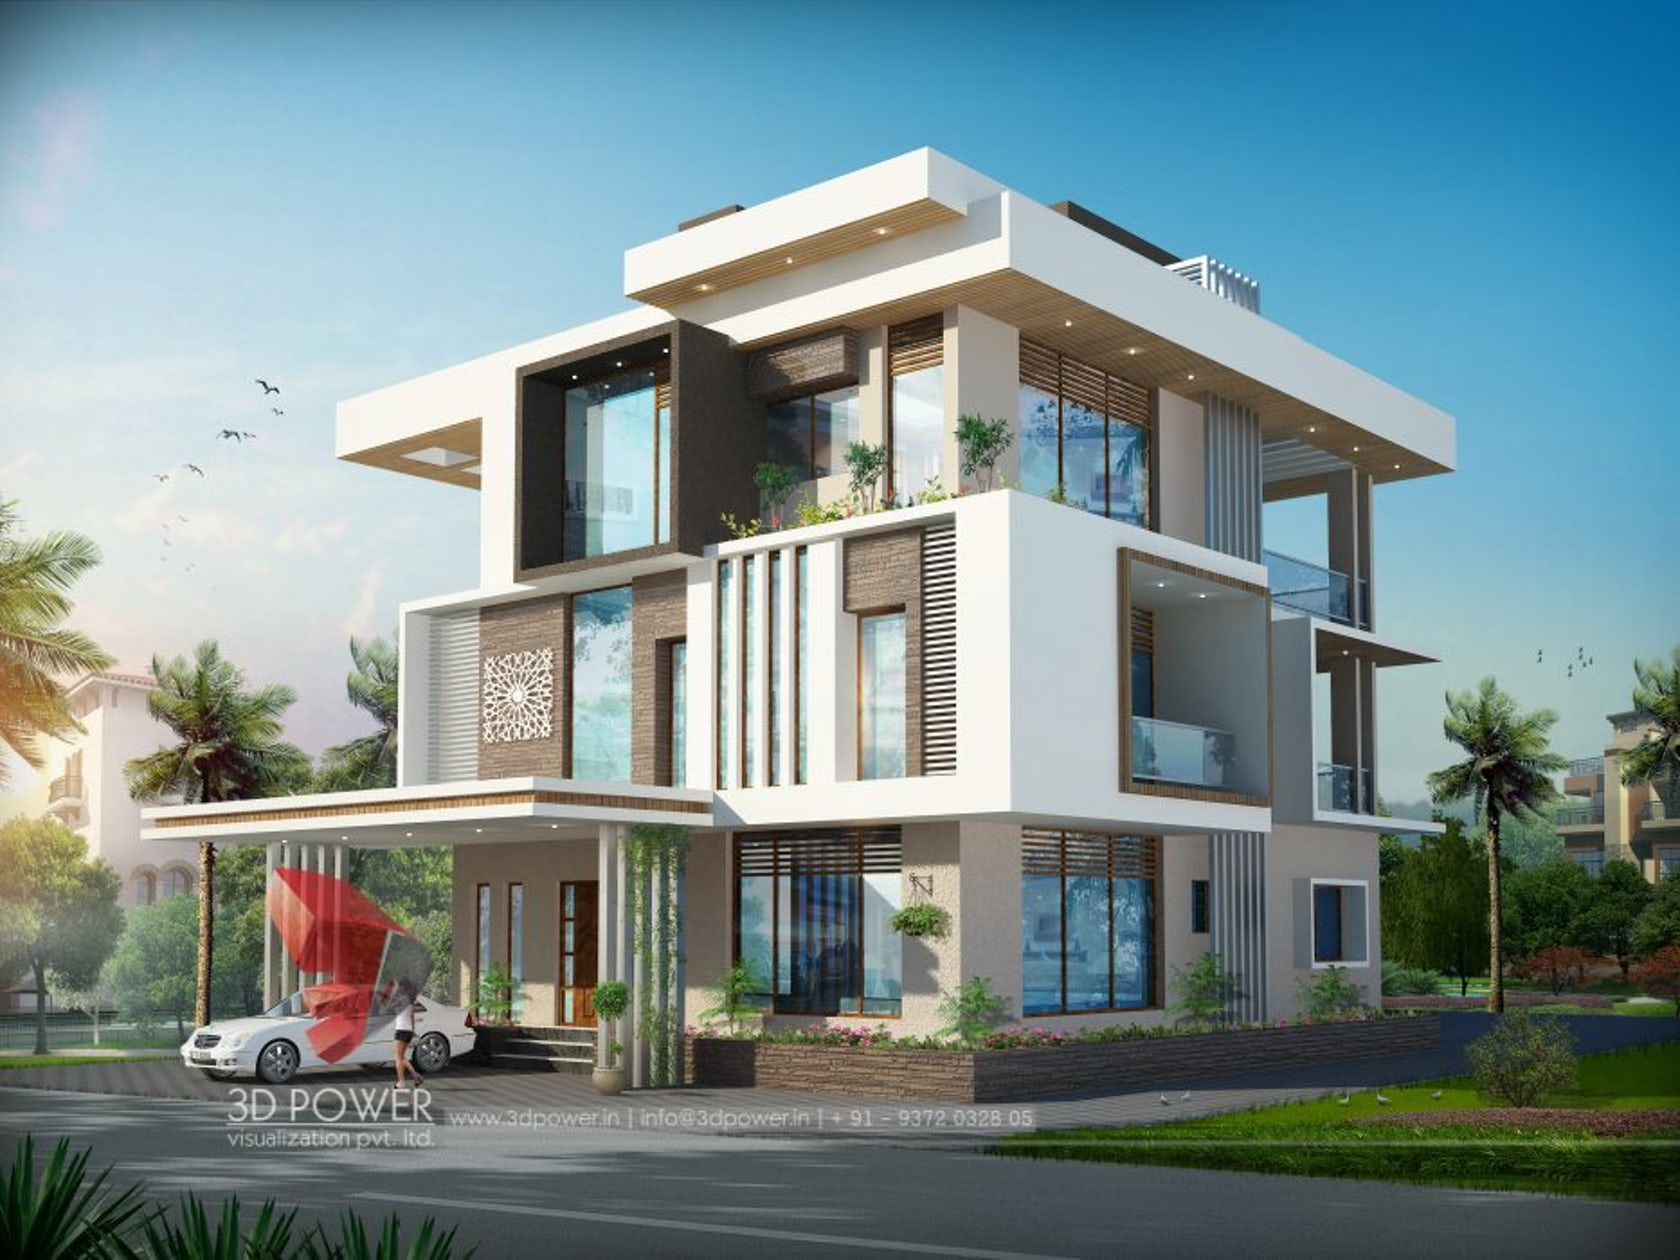 3d ultra modern bungalow exterior day rendering and for Bungalow house exterior design